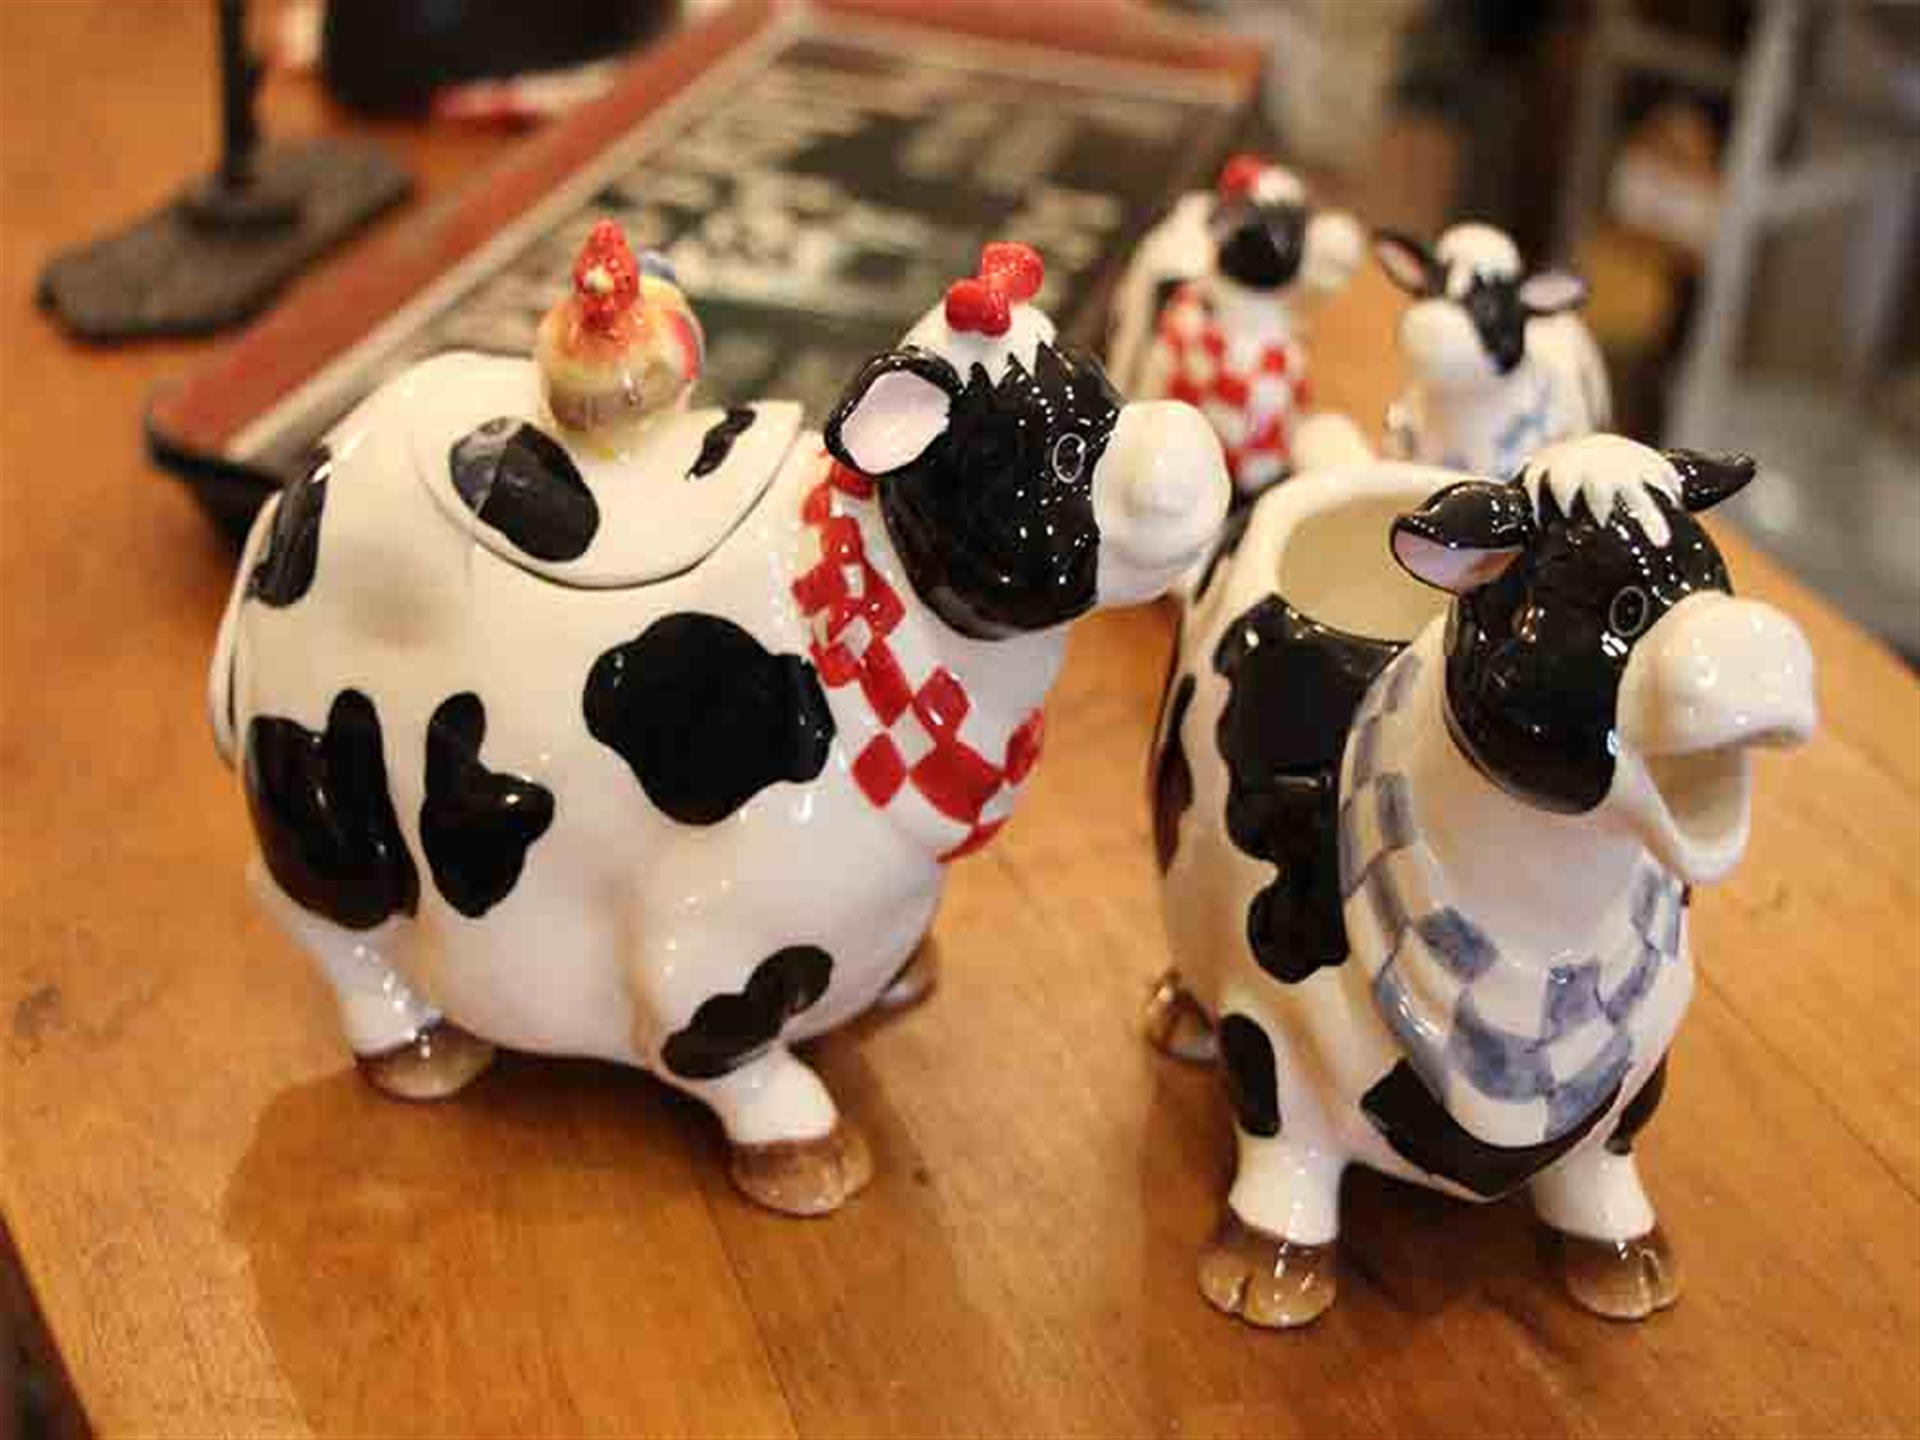 Cow figurines on counter